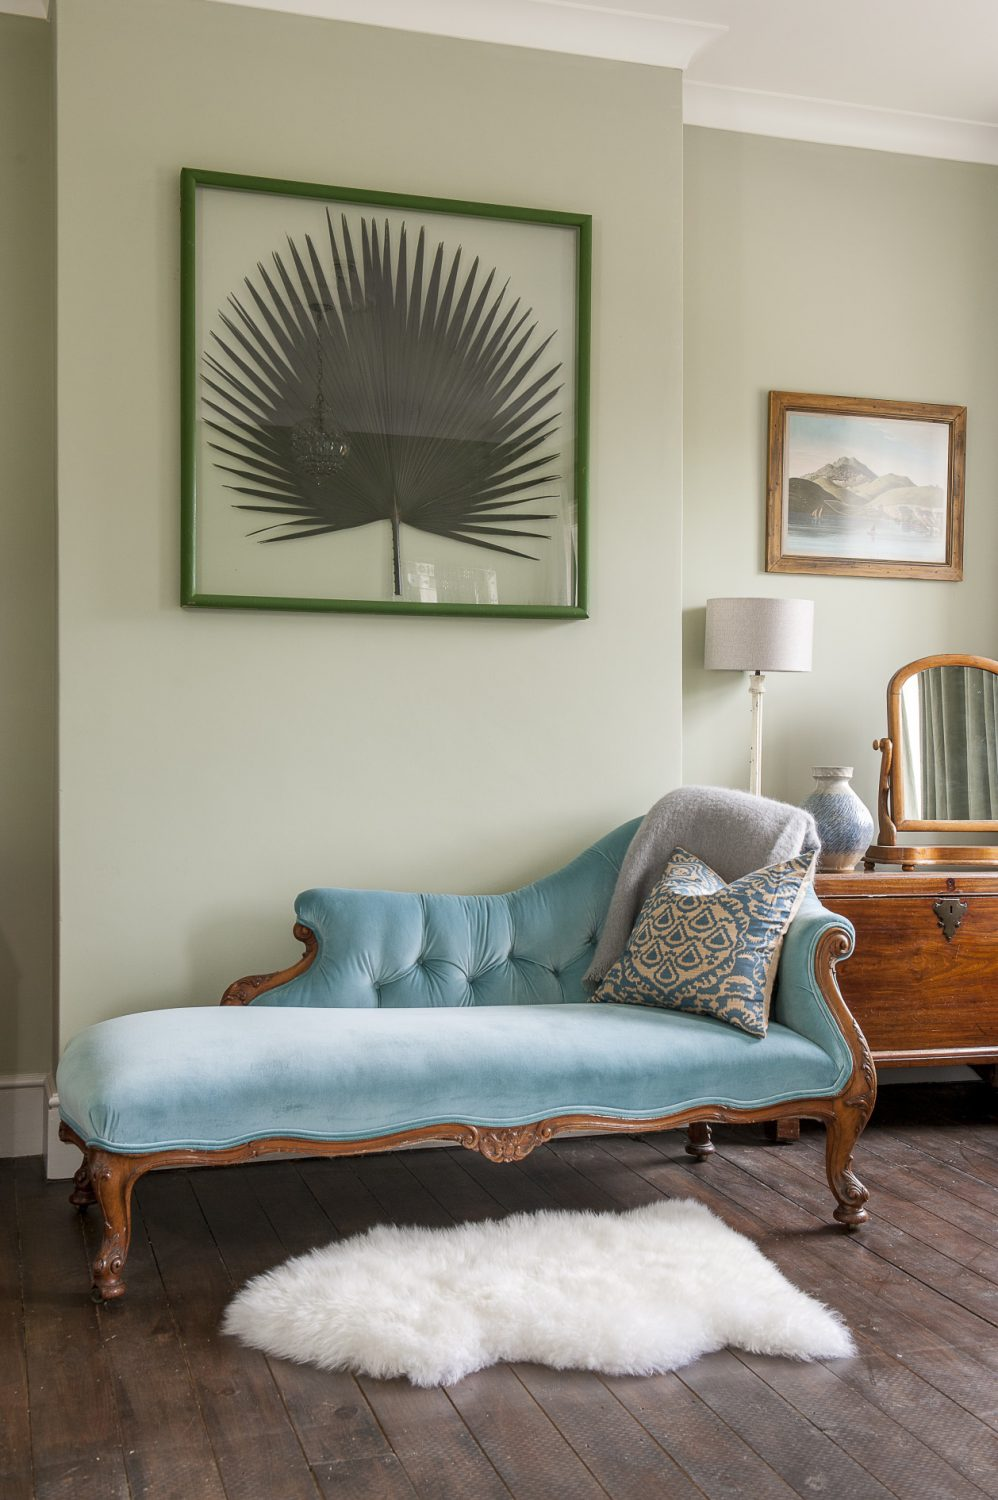 The chaise longue in George's Room is covered in turquoise velvet by Clarke & Clarke and the sheepskin on the floor next to it is from Hunter Jones, Rye